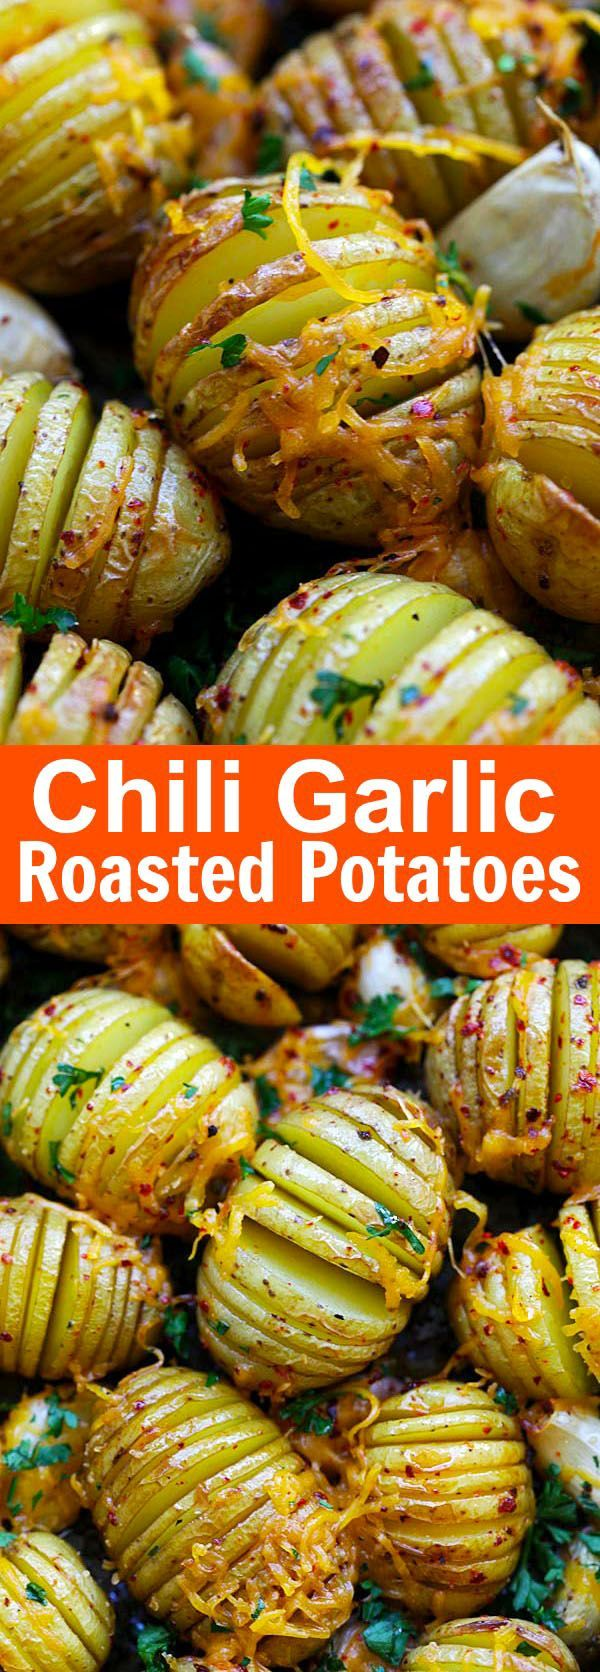 Chili Garlic Roasted Potatoes – jazz up regular garlic roasted potatoes with chili for extra kick. Cheesy and buttery goodness that you can't stop eating   rasamalaysia.com